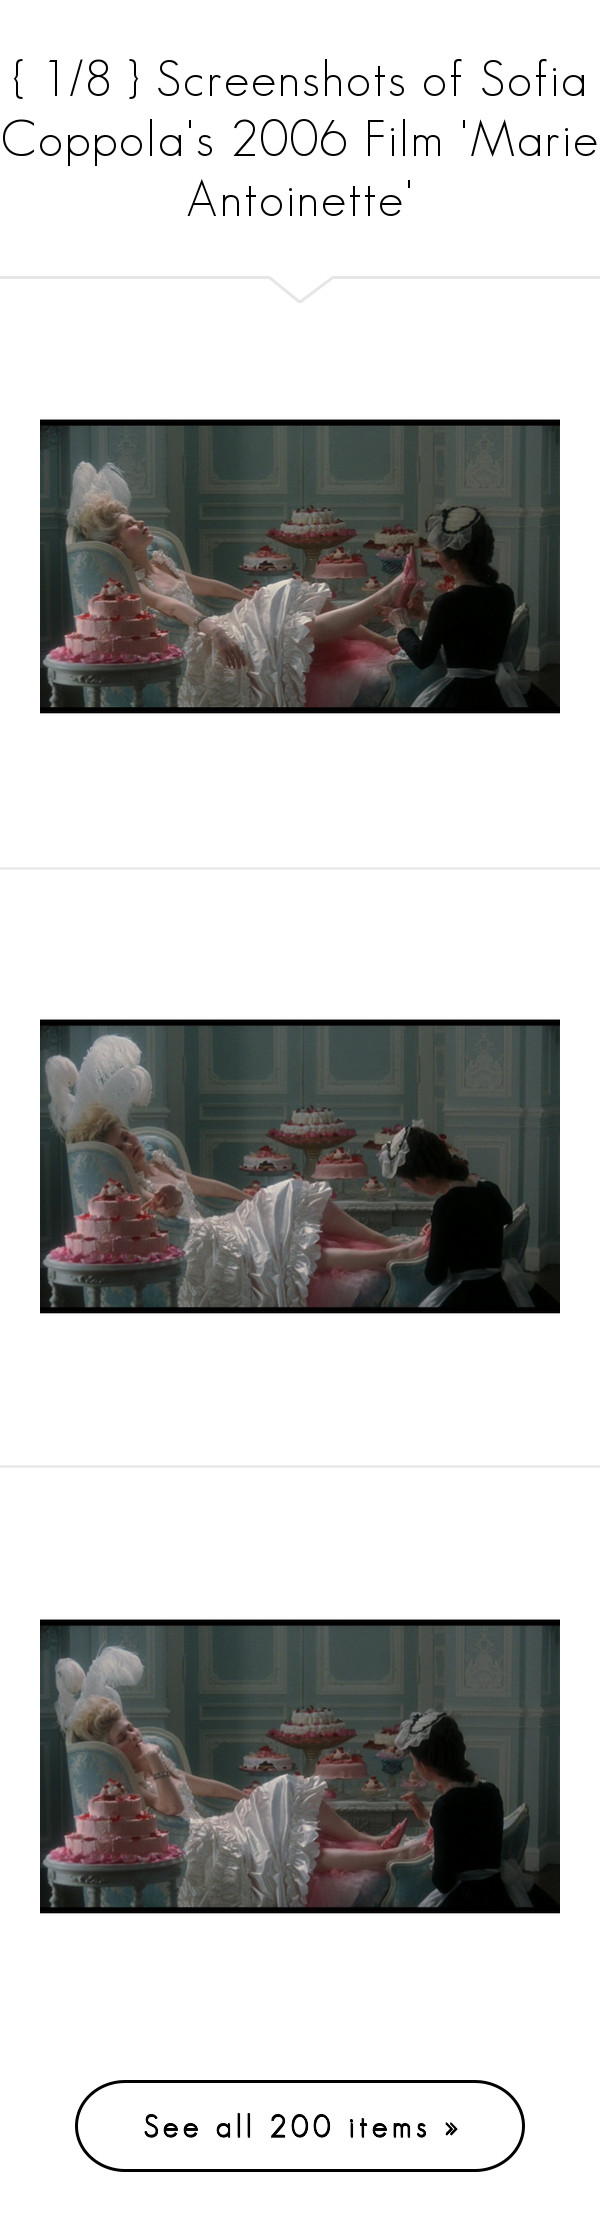 """{ 1/8 } Screenshots of Sofia Coppola's 2006 Film 'Marie Antoinette'"" by ant0inette ❤ liked on Polyvore featuring marie antoinette halloween costume, marie antoinette costume and pictures"